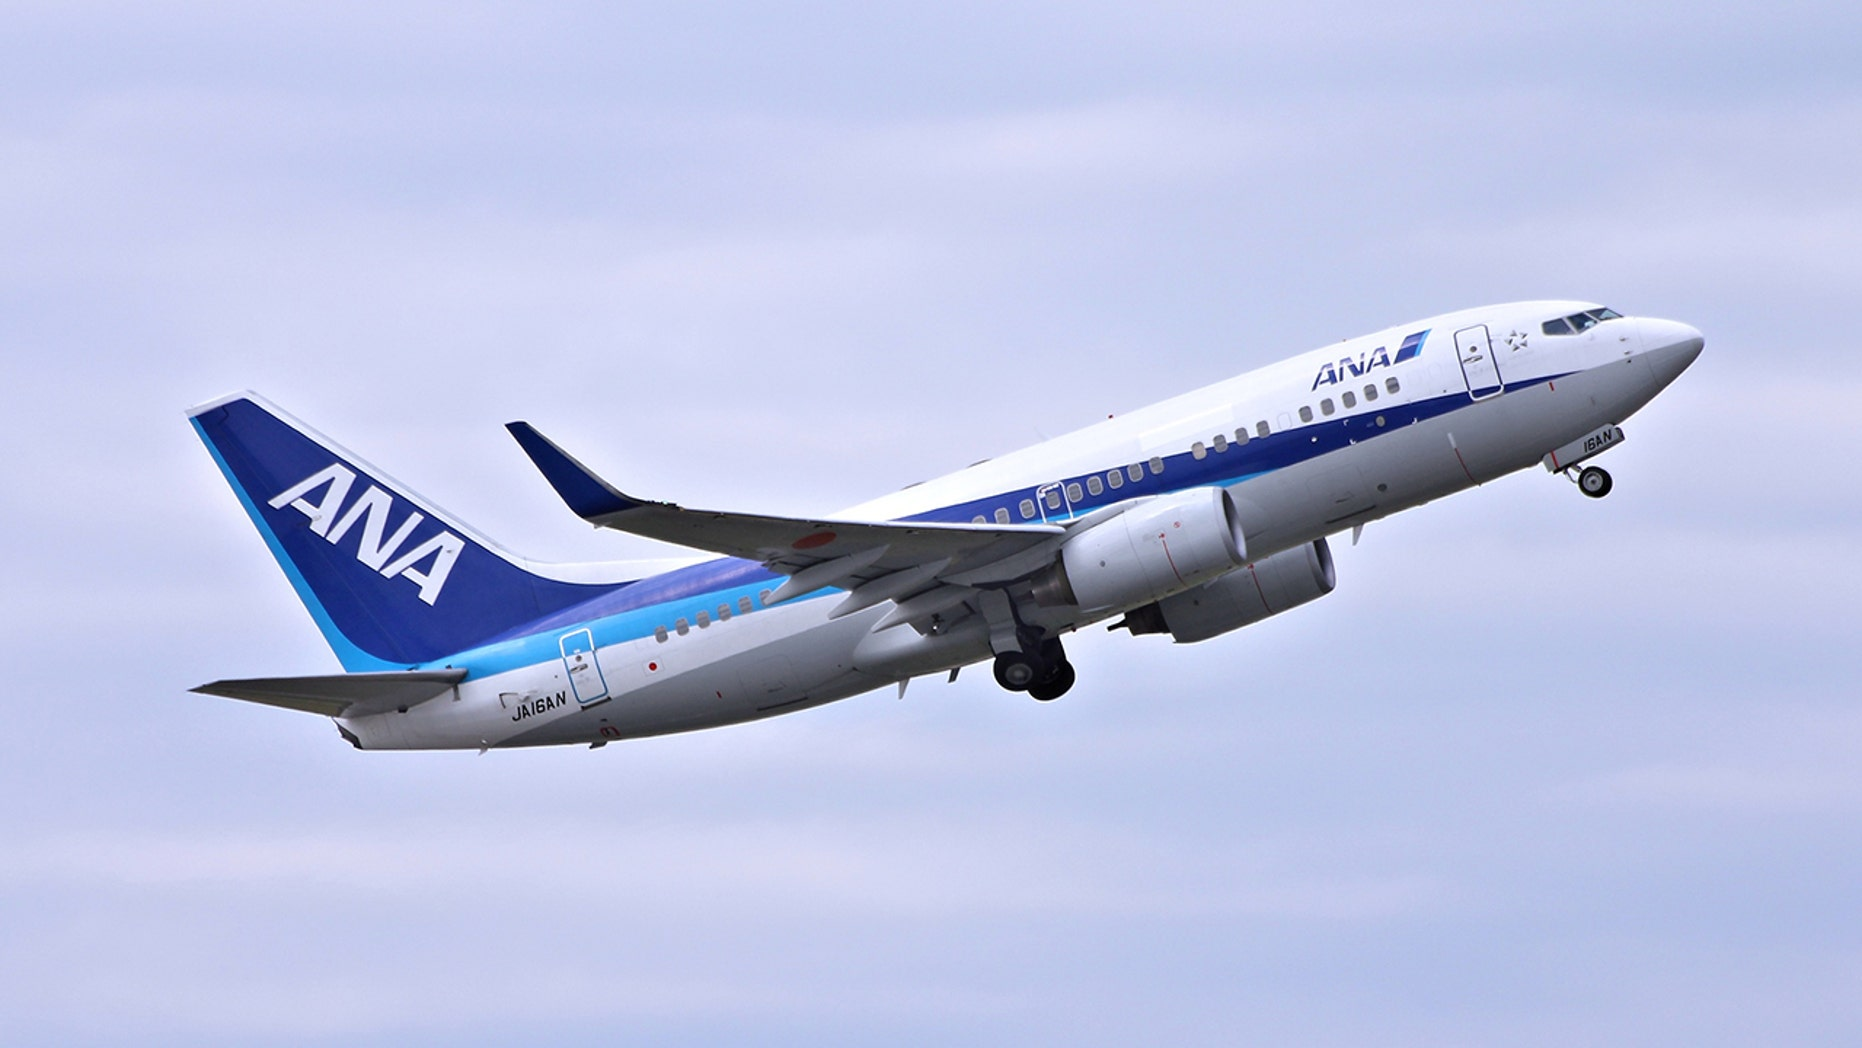 A 24-year-old man allegedly peed on a 50-year-old fellow passenger on an All Nippon Airways flight to Japan.